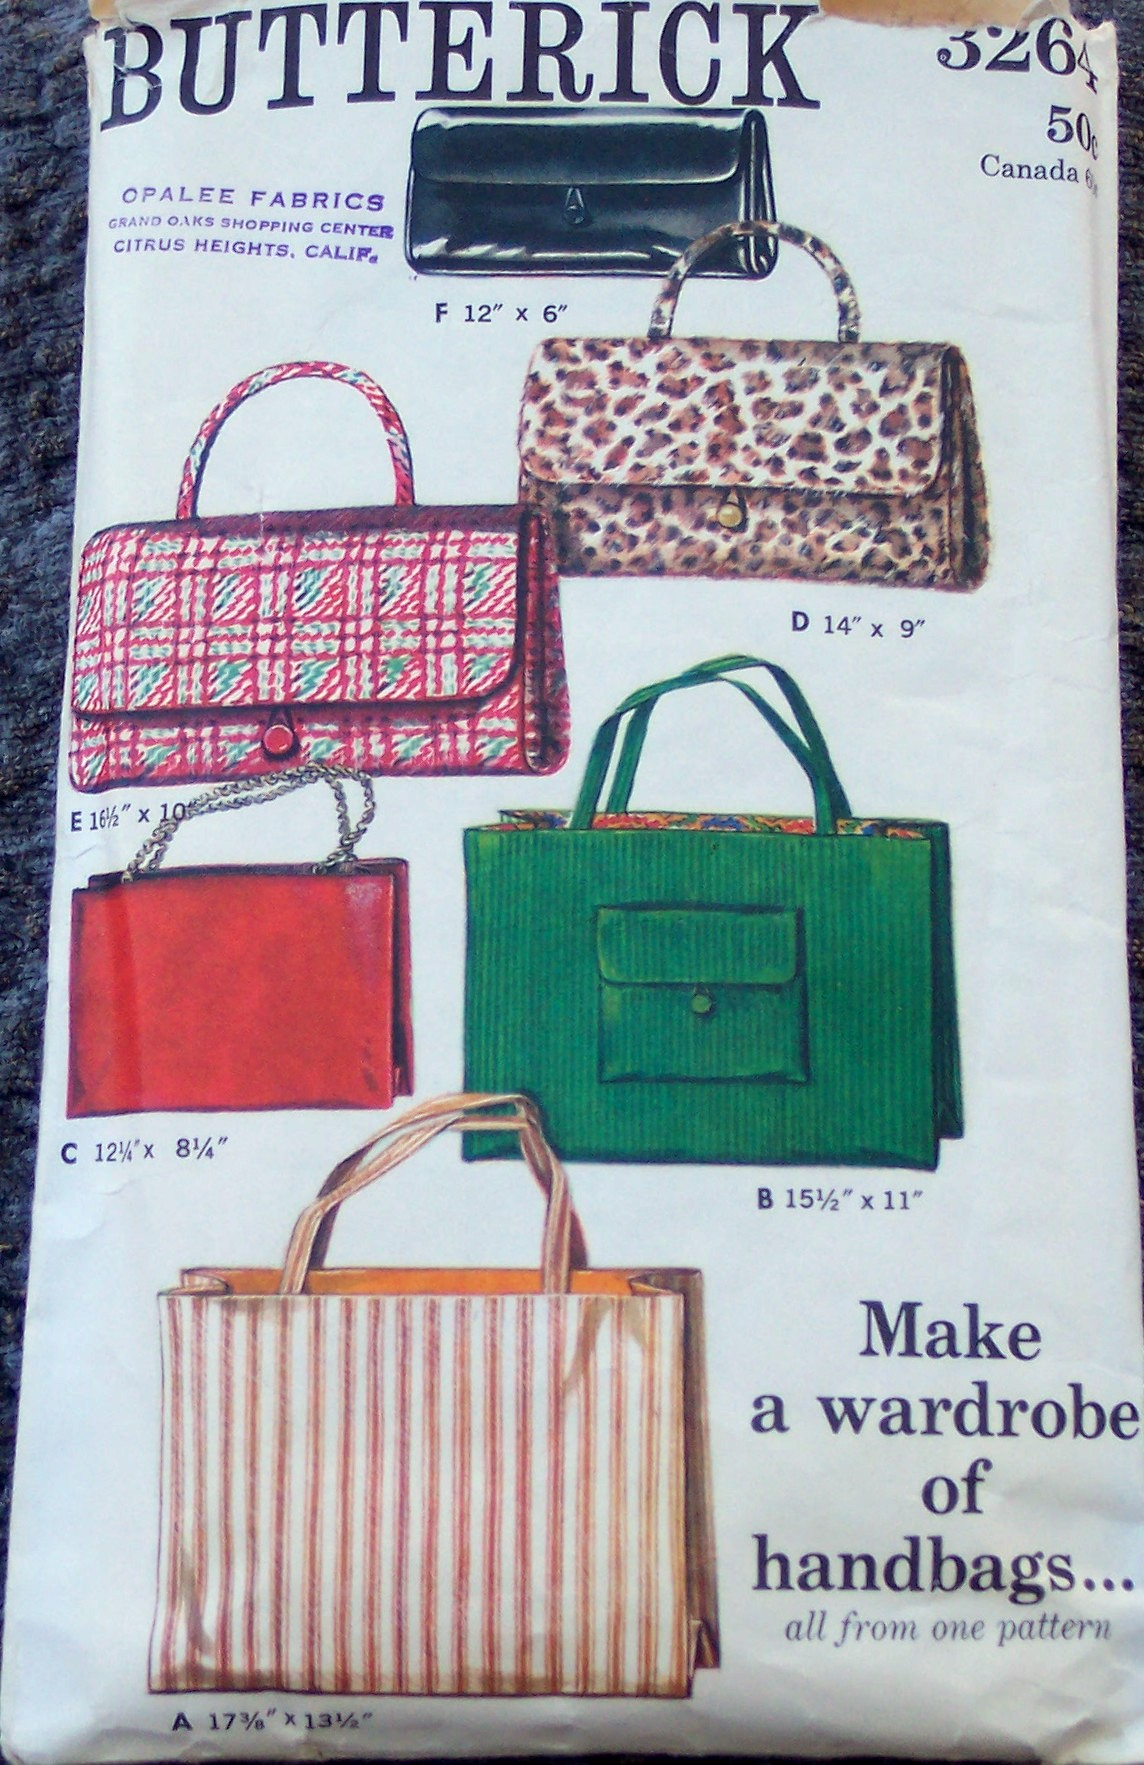 Hiawatha Book Beaded Bags Vintage Beading Patterns Purses Jewelry